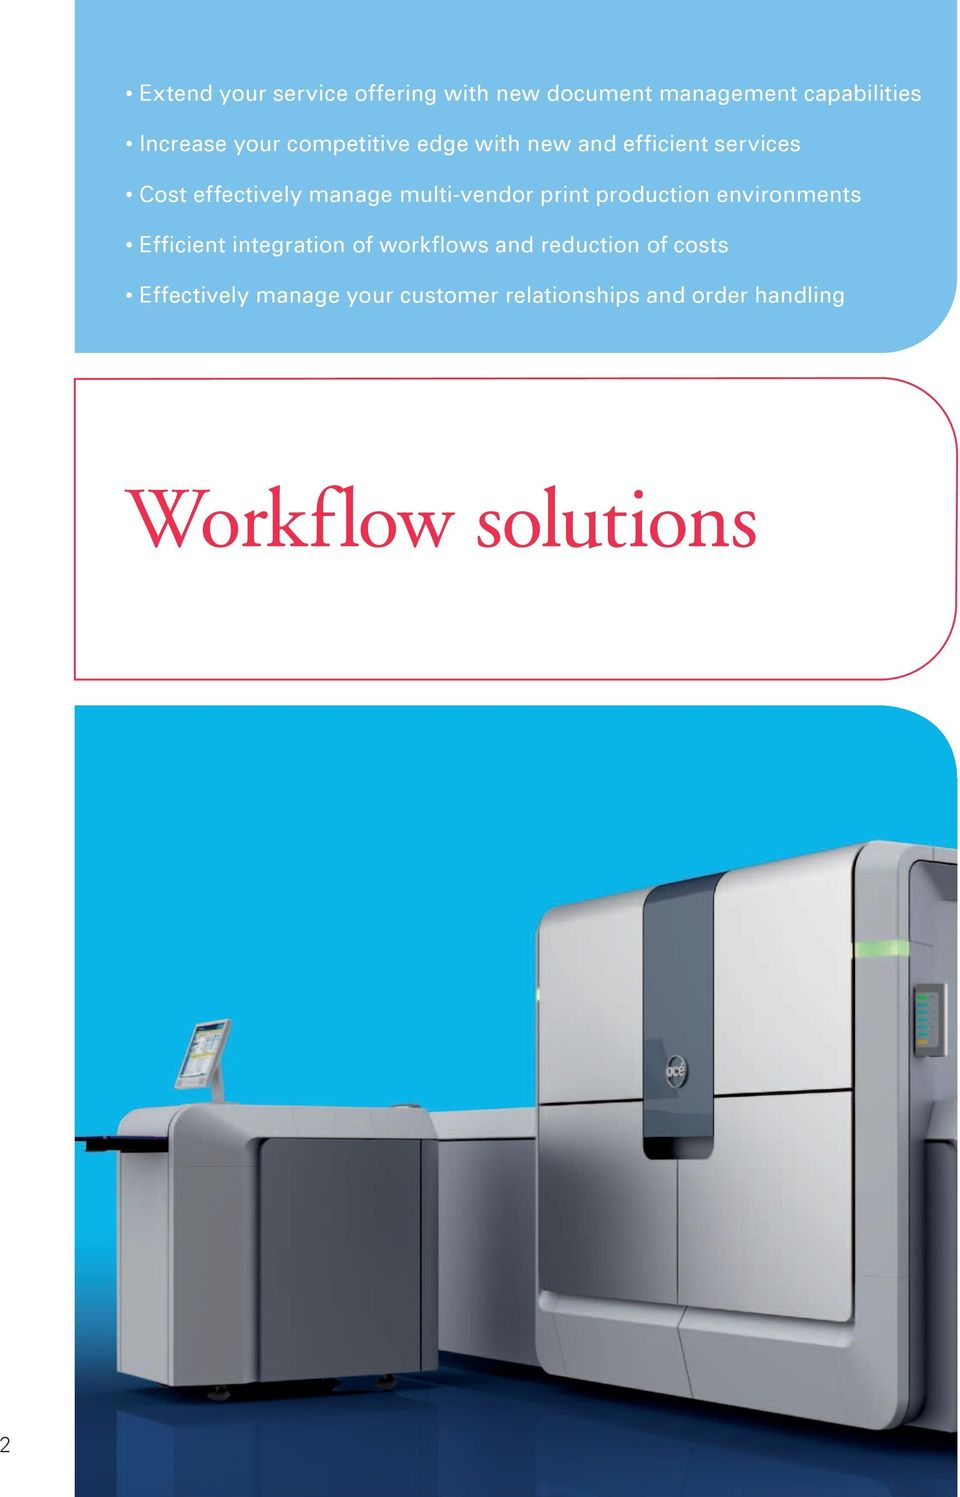 print production environments Efficient integration of workflows and reduction of